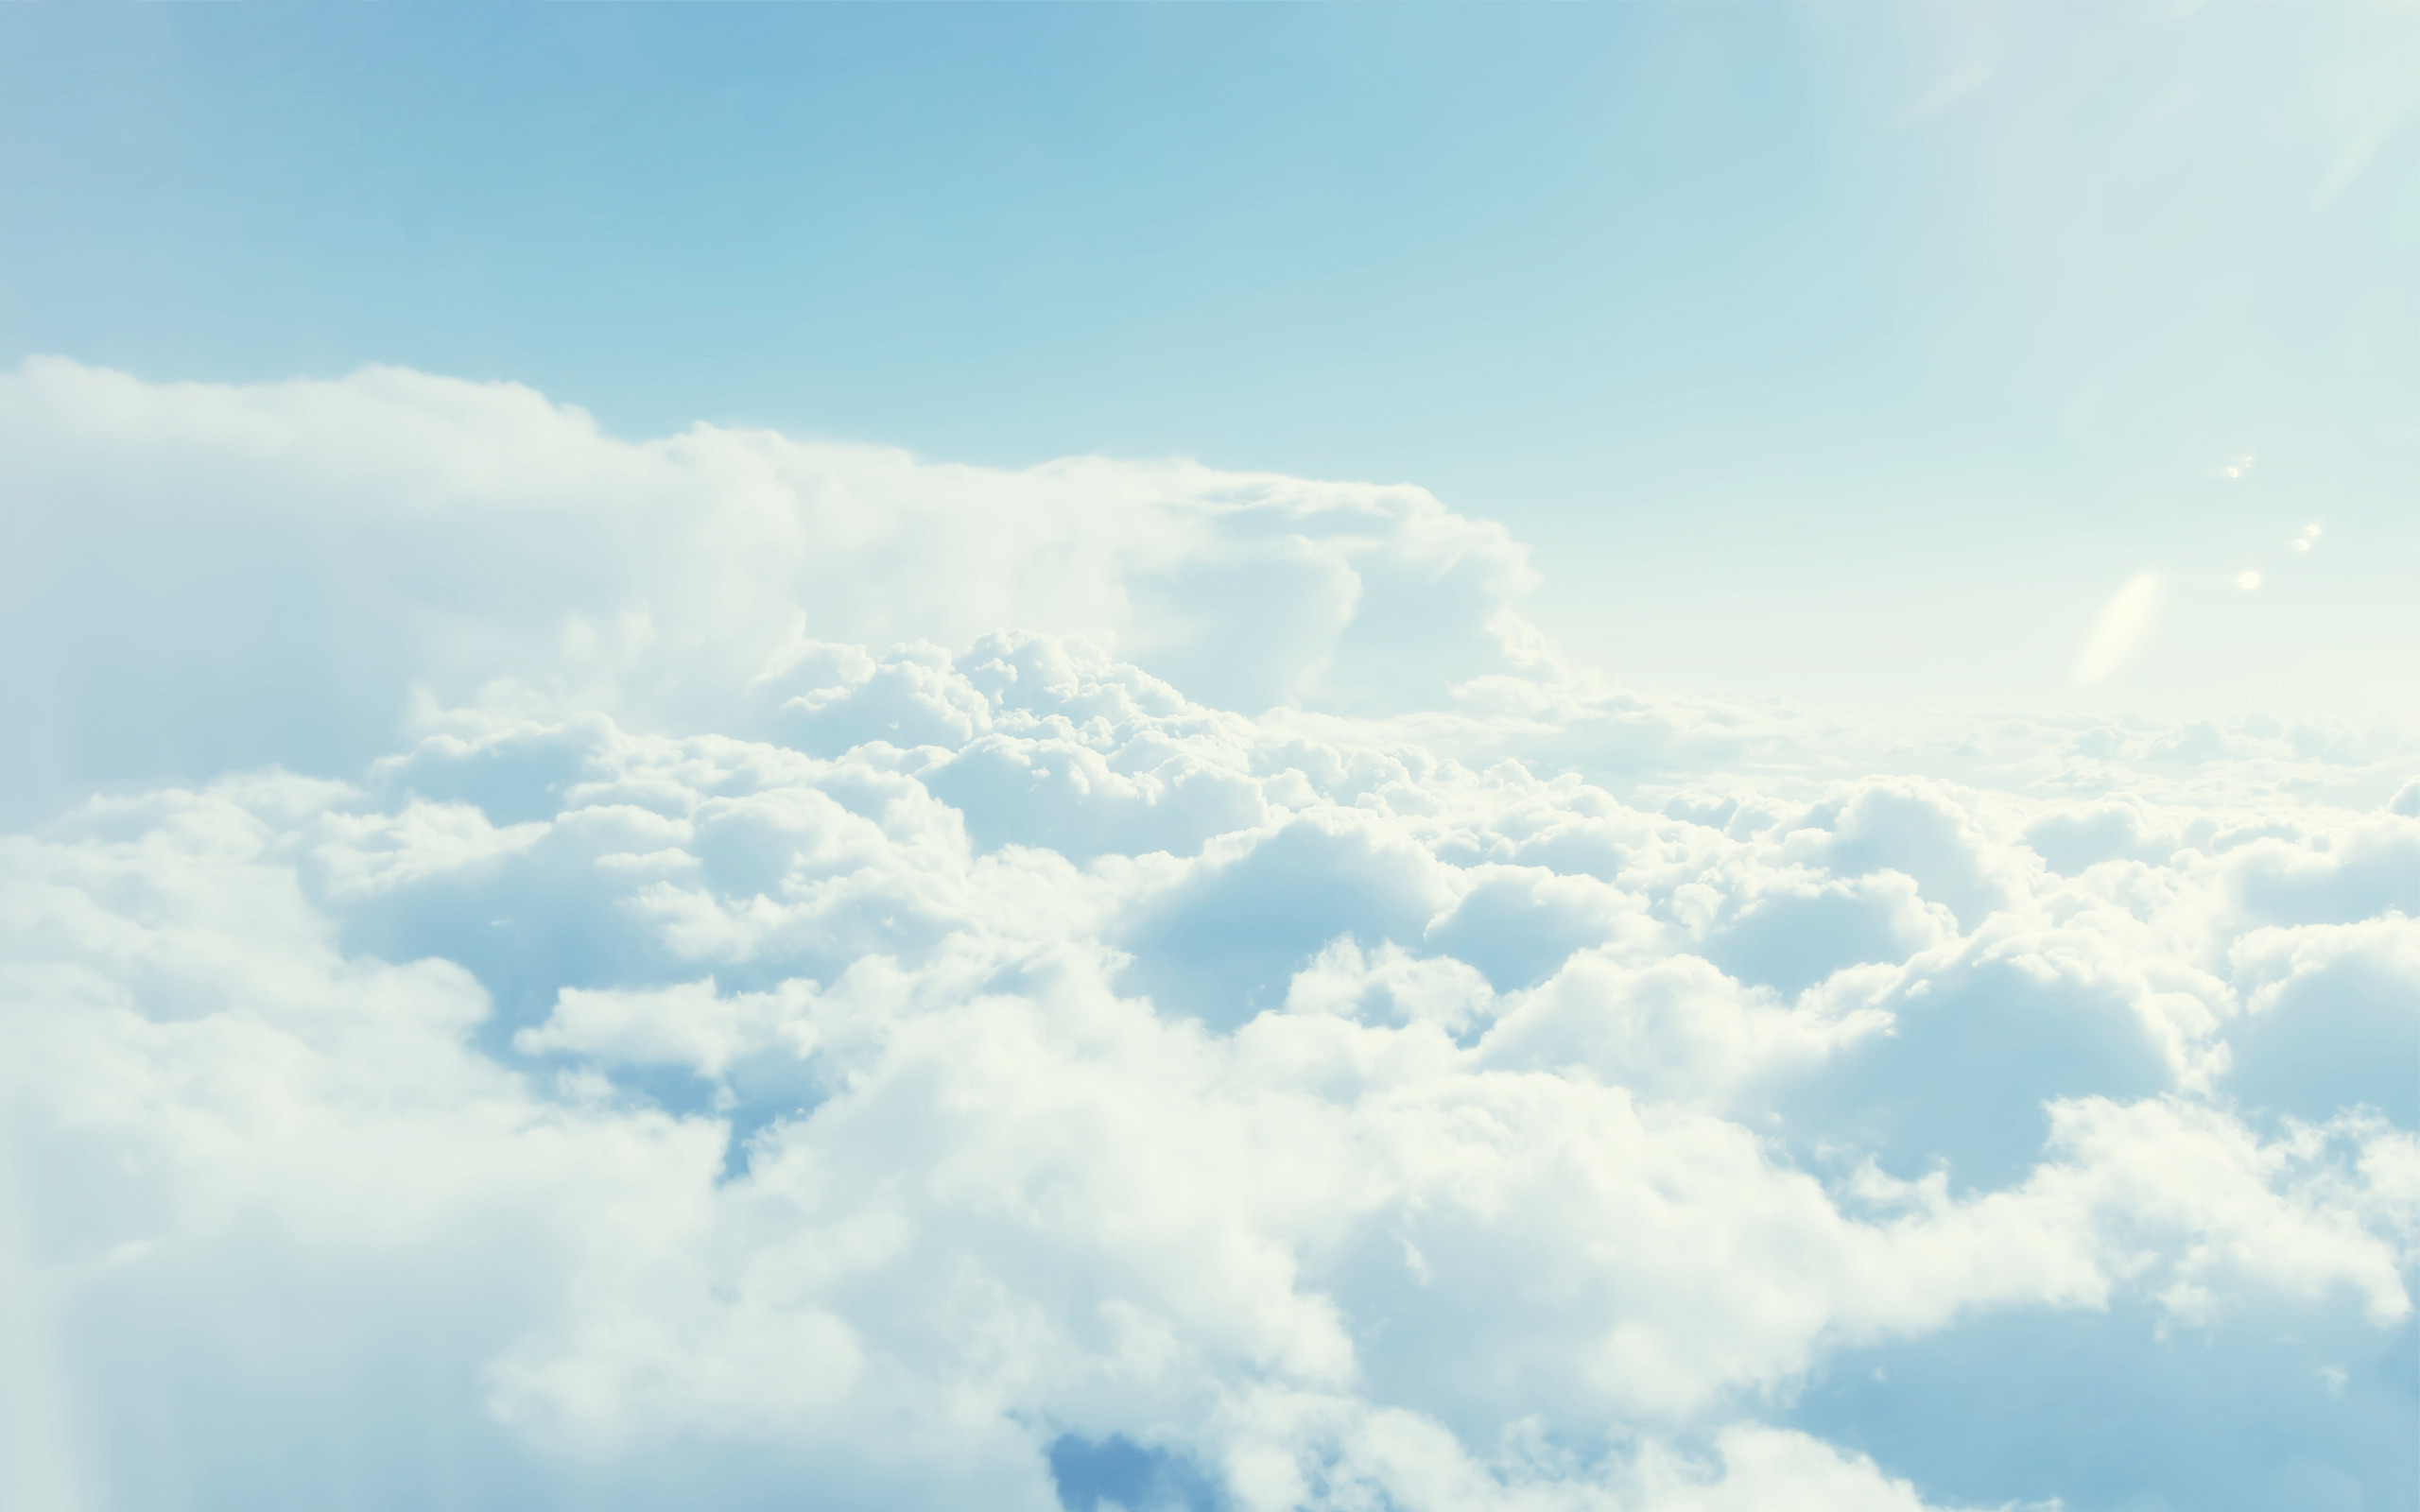 Above the Clouds wallpapers and images   download wallpapers 2560x1600